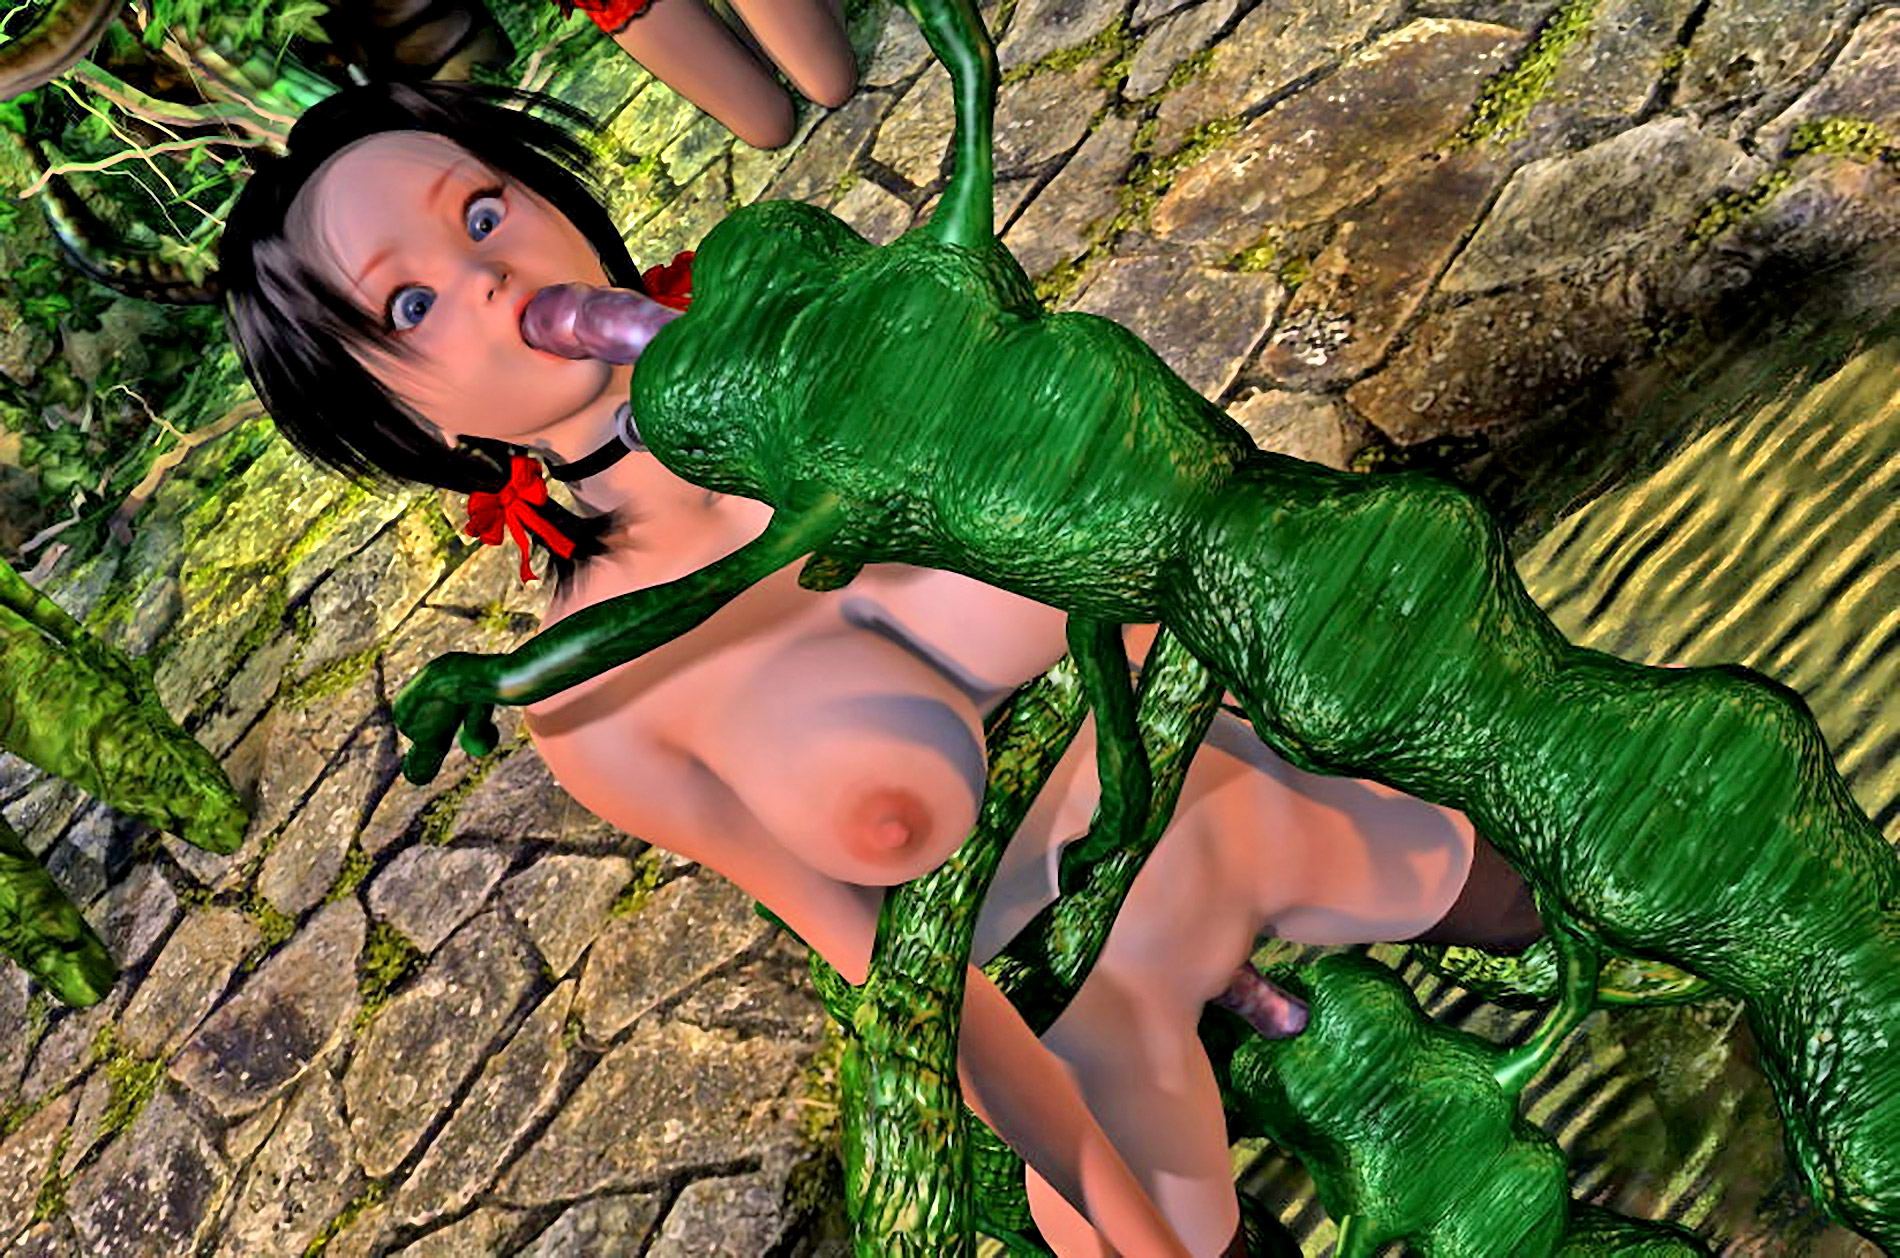 Porn videos 3d tomb raider vs aliens nude images